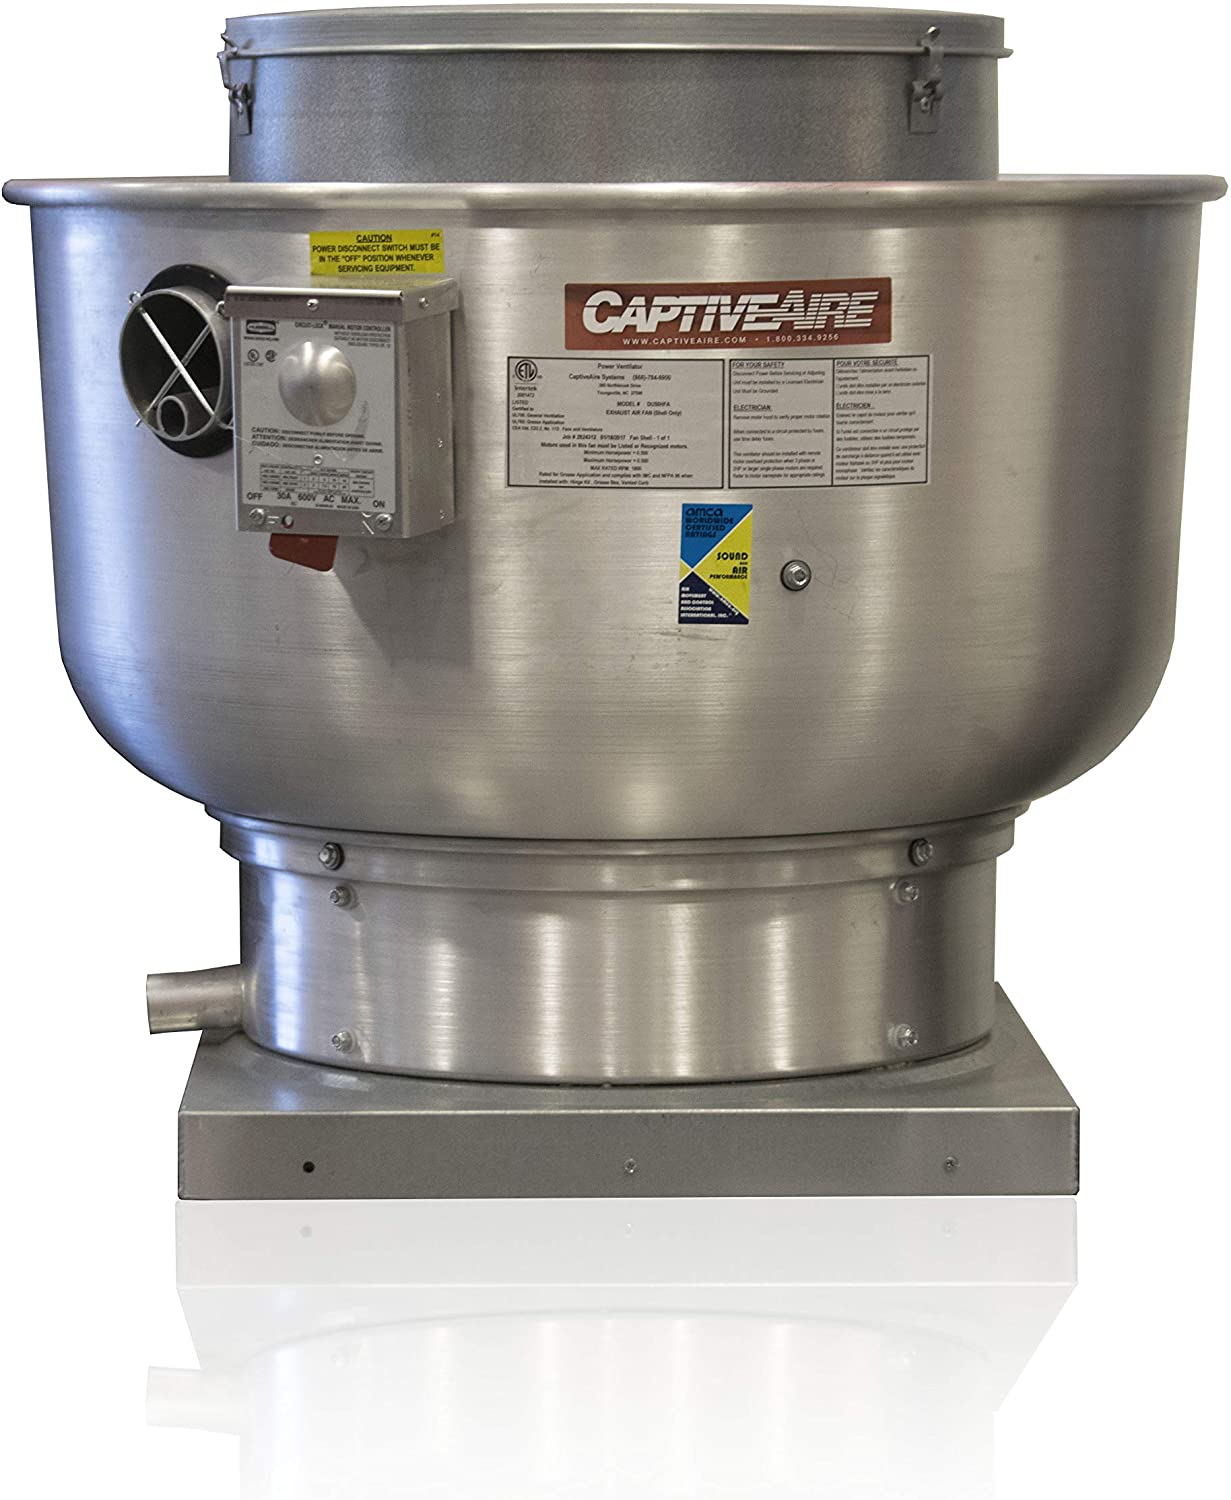 Restaurant Canopy Hood Grease Rated Exhaust Fan- Belt Drive Centrifugal Upblast Exhaust Fan- 21